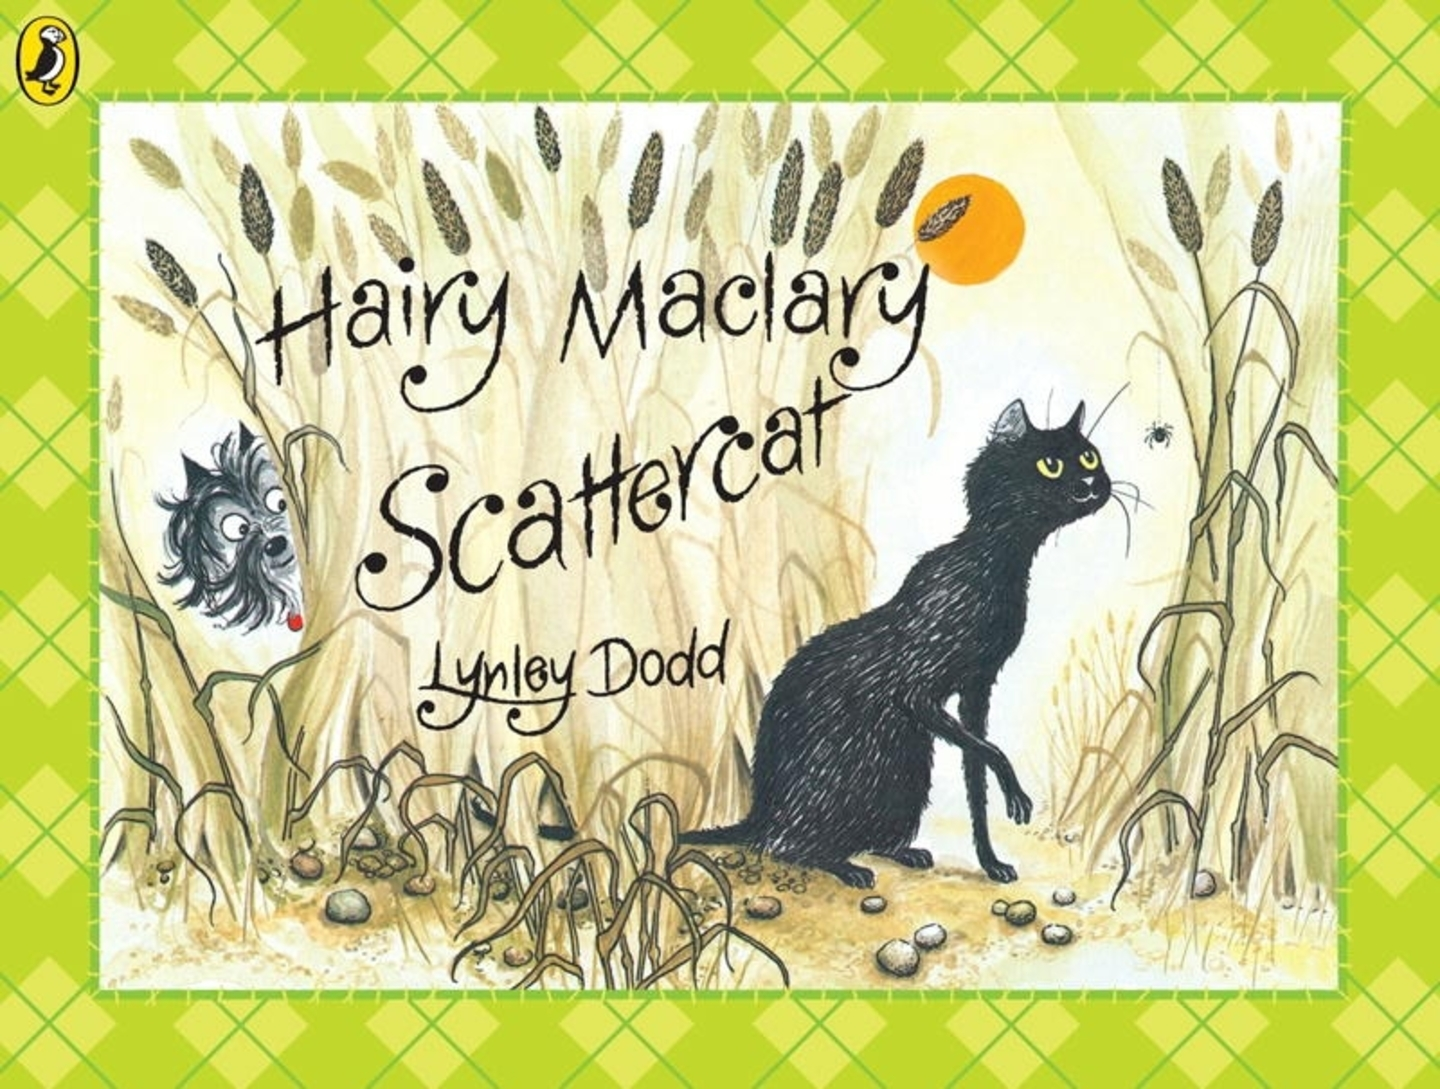 Hairy Maclary Scattercat by Lynley Dodd image